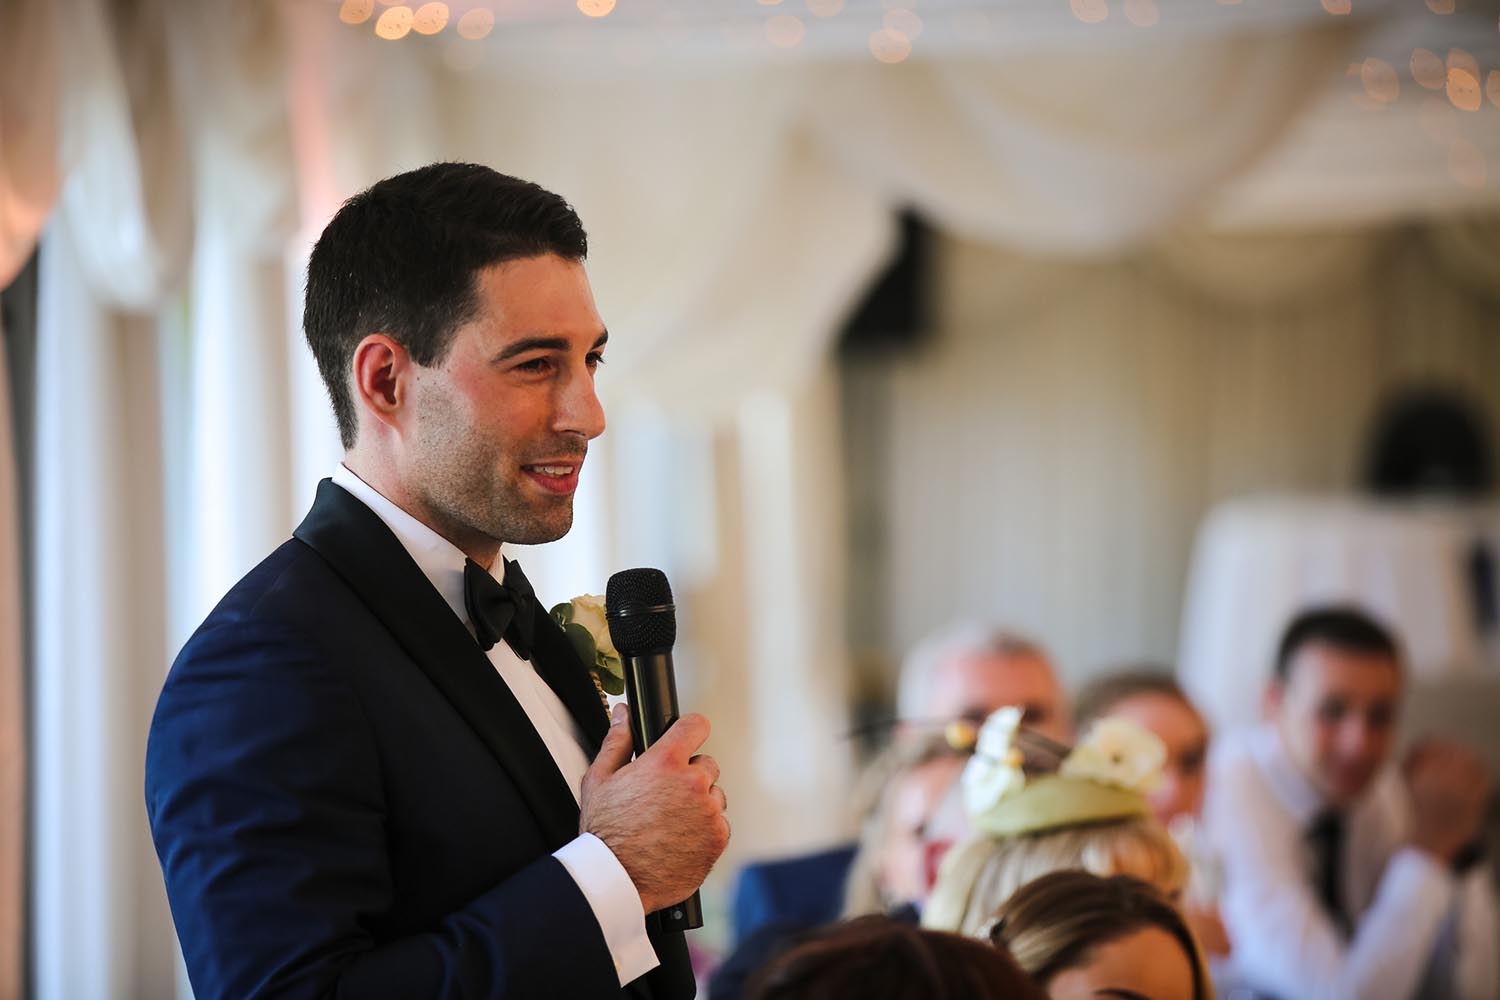 Groom smiling while making a speech on his wedding day